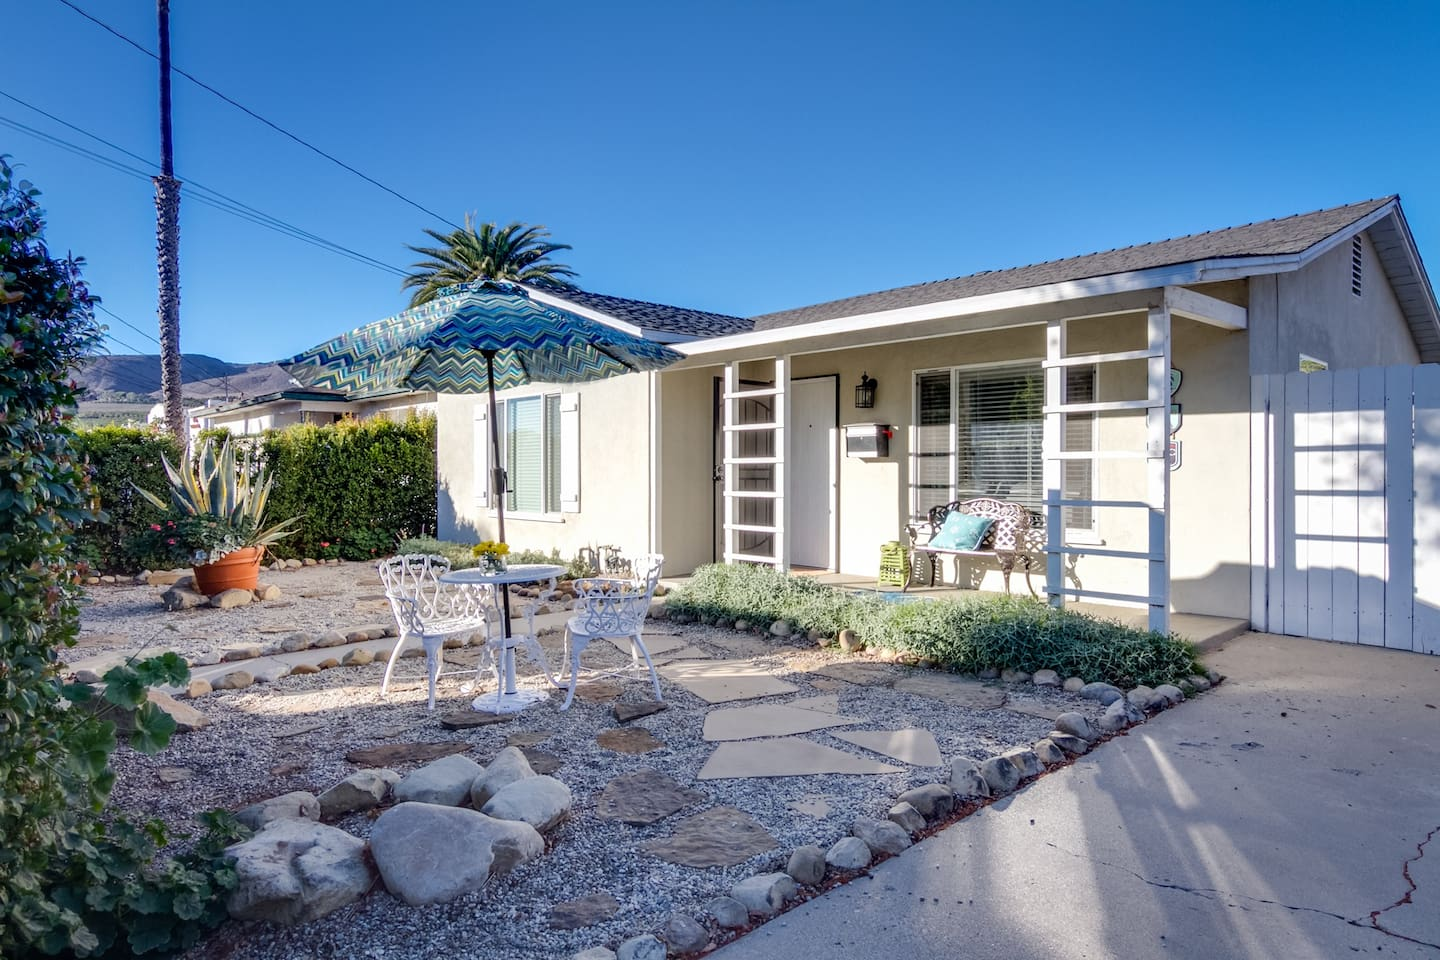 You'll have an unforgettable California getaway when you stay at this Ventura vacation rental home!